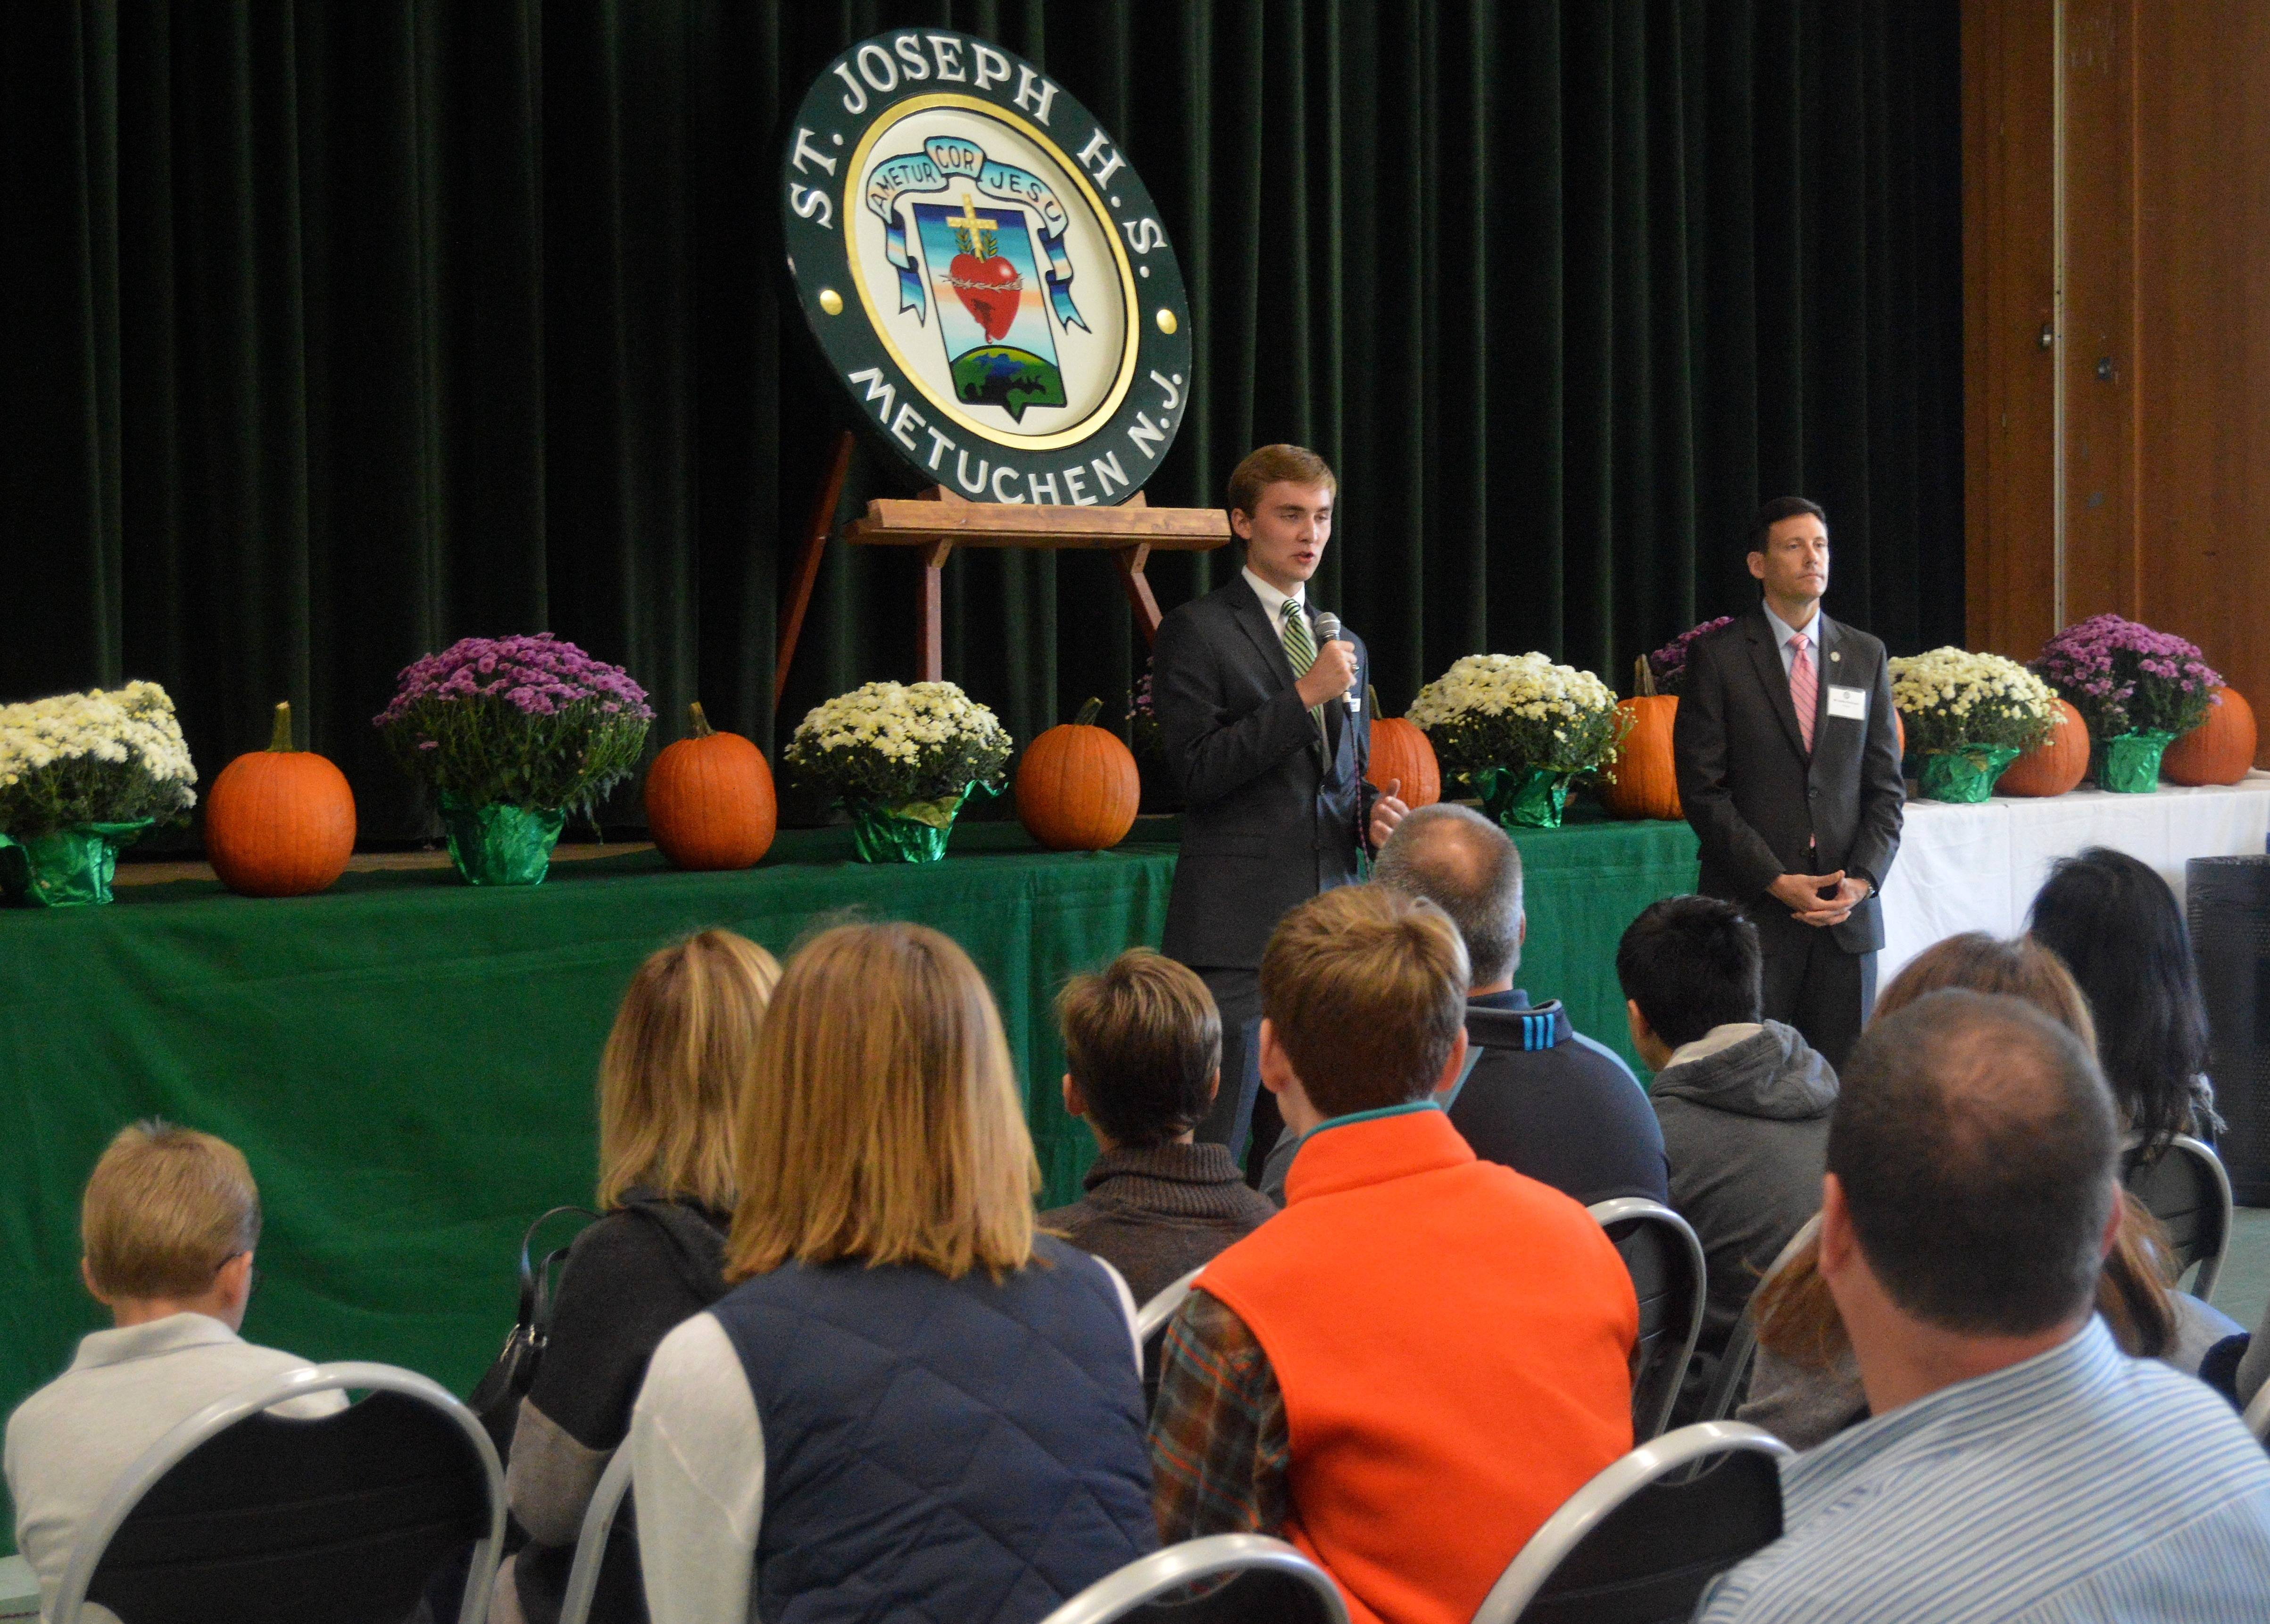 f40a249a3d0d36b06680_Anthony_Colucci_addresses_crowd_at_Open_House10-18-15.JPG